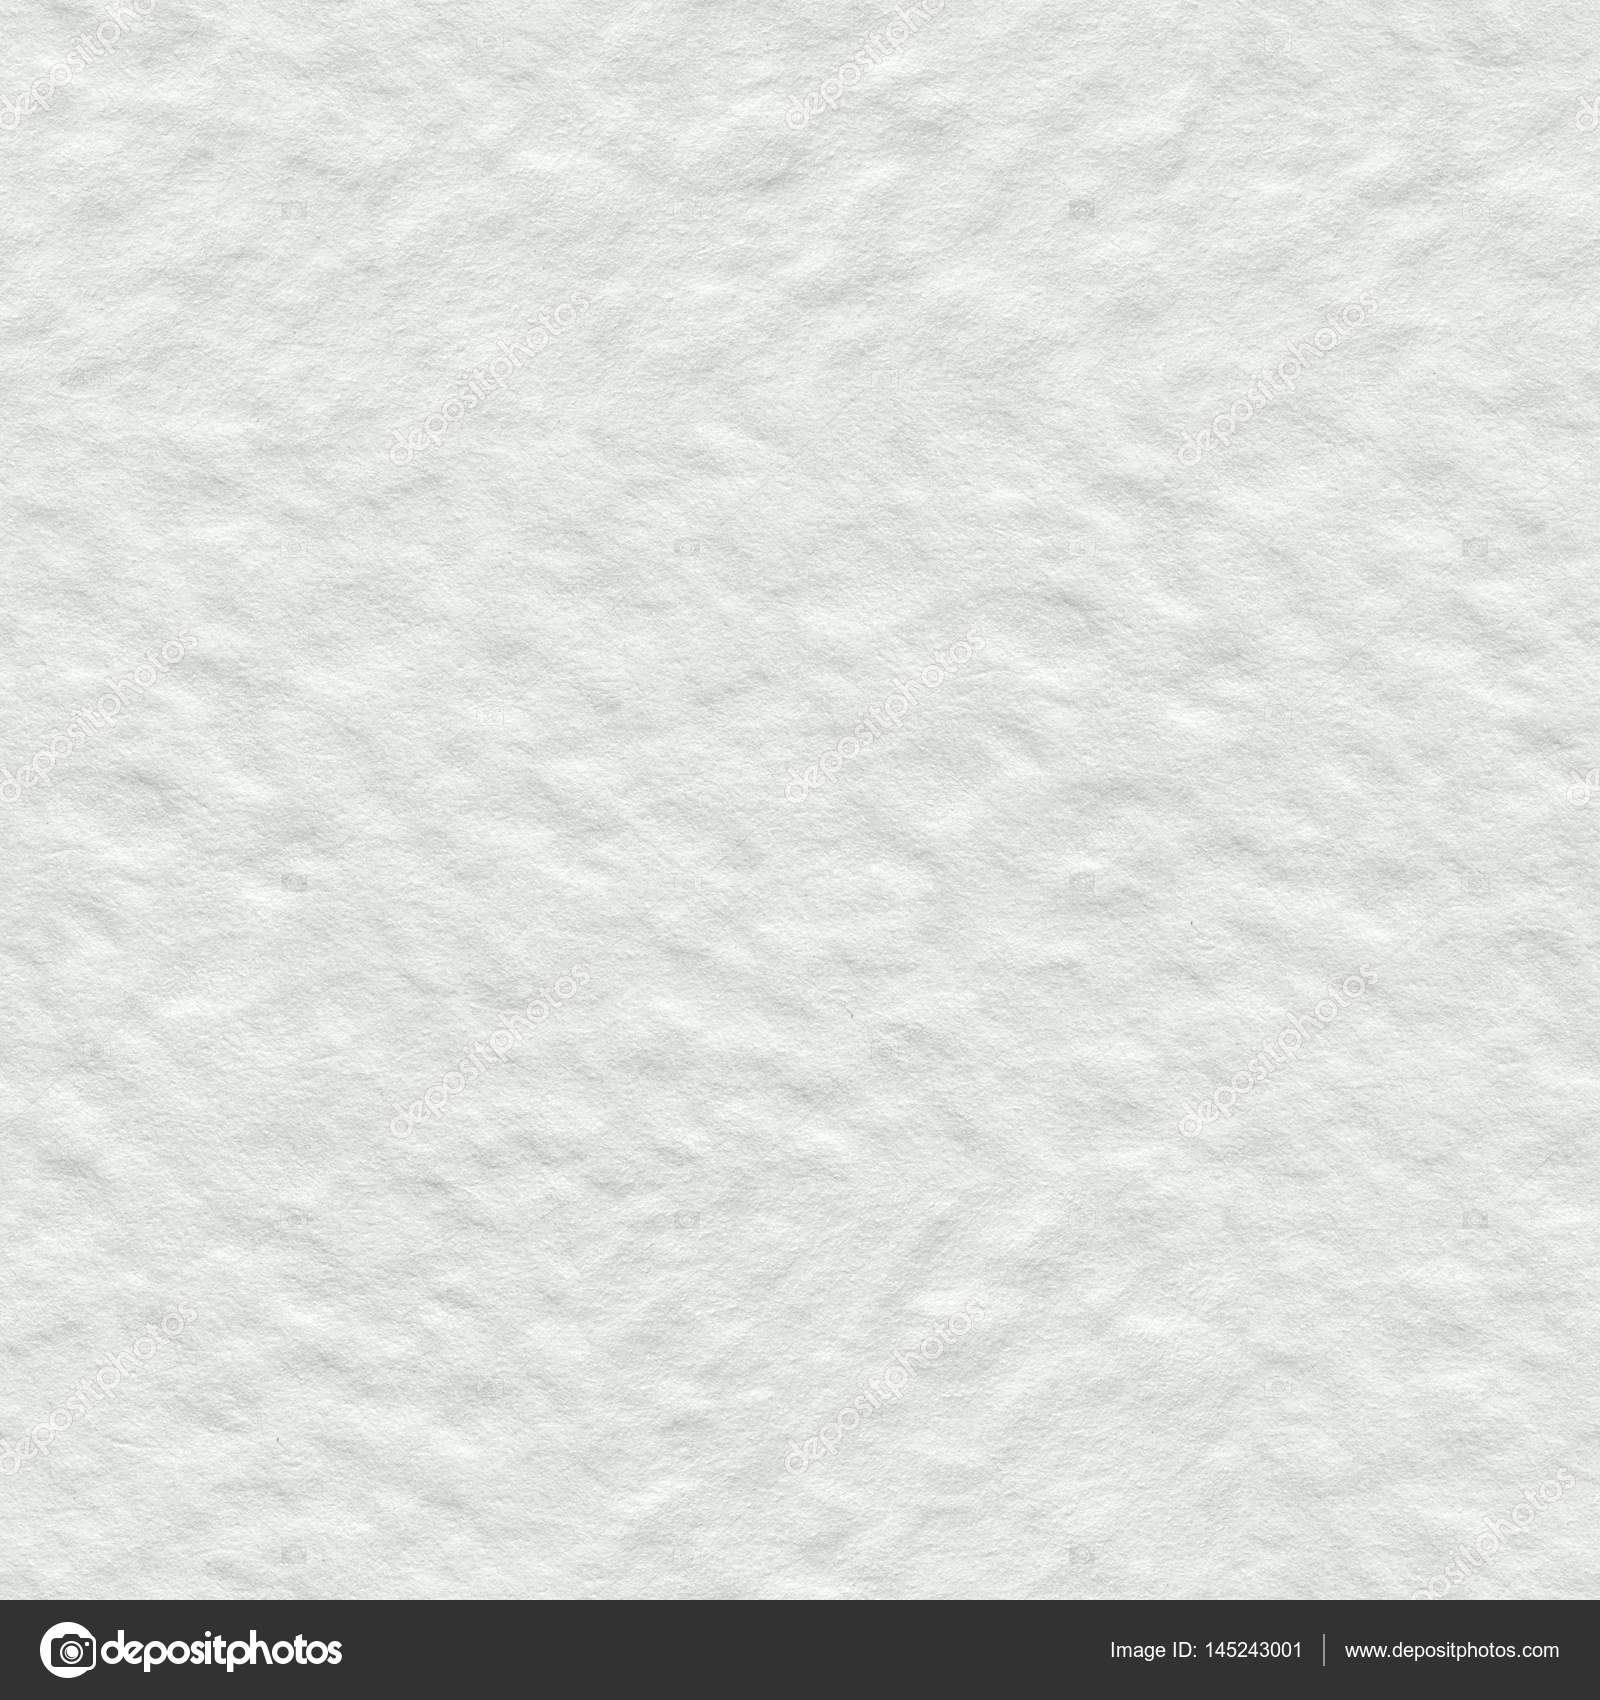 White Watercolor Paper Texture Seamless Square Background Tile Stock Photo